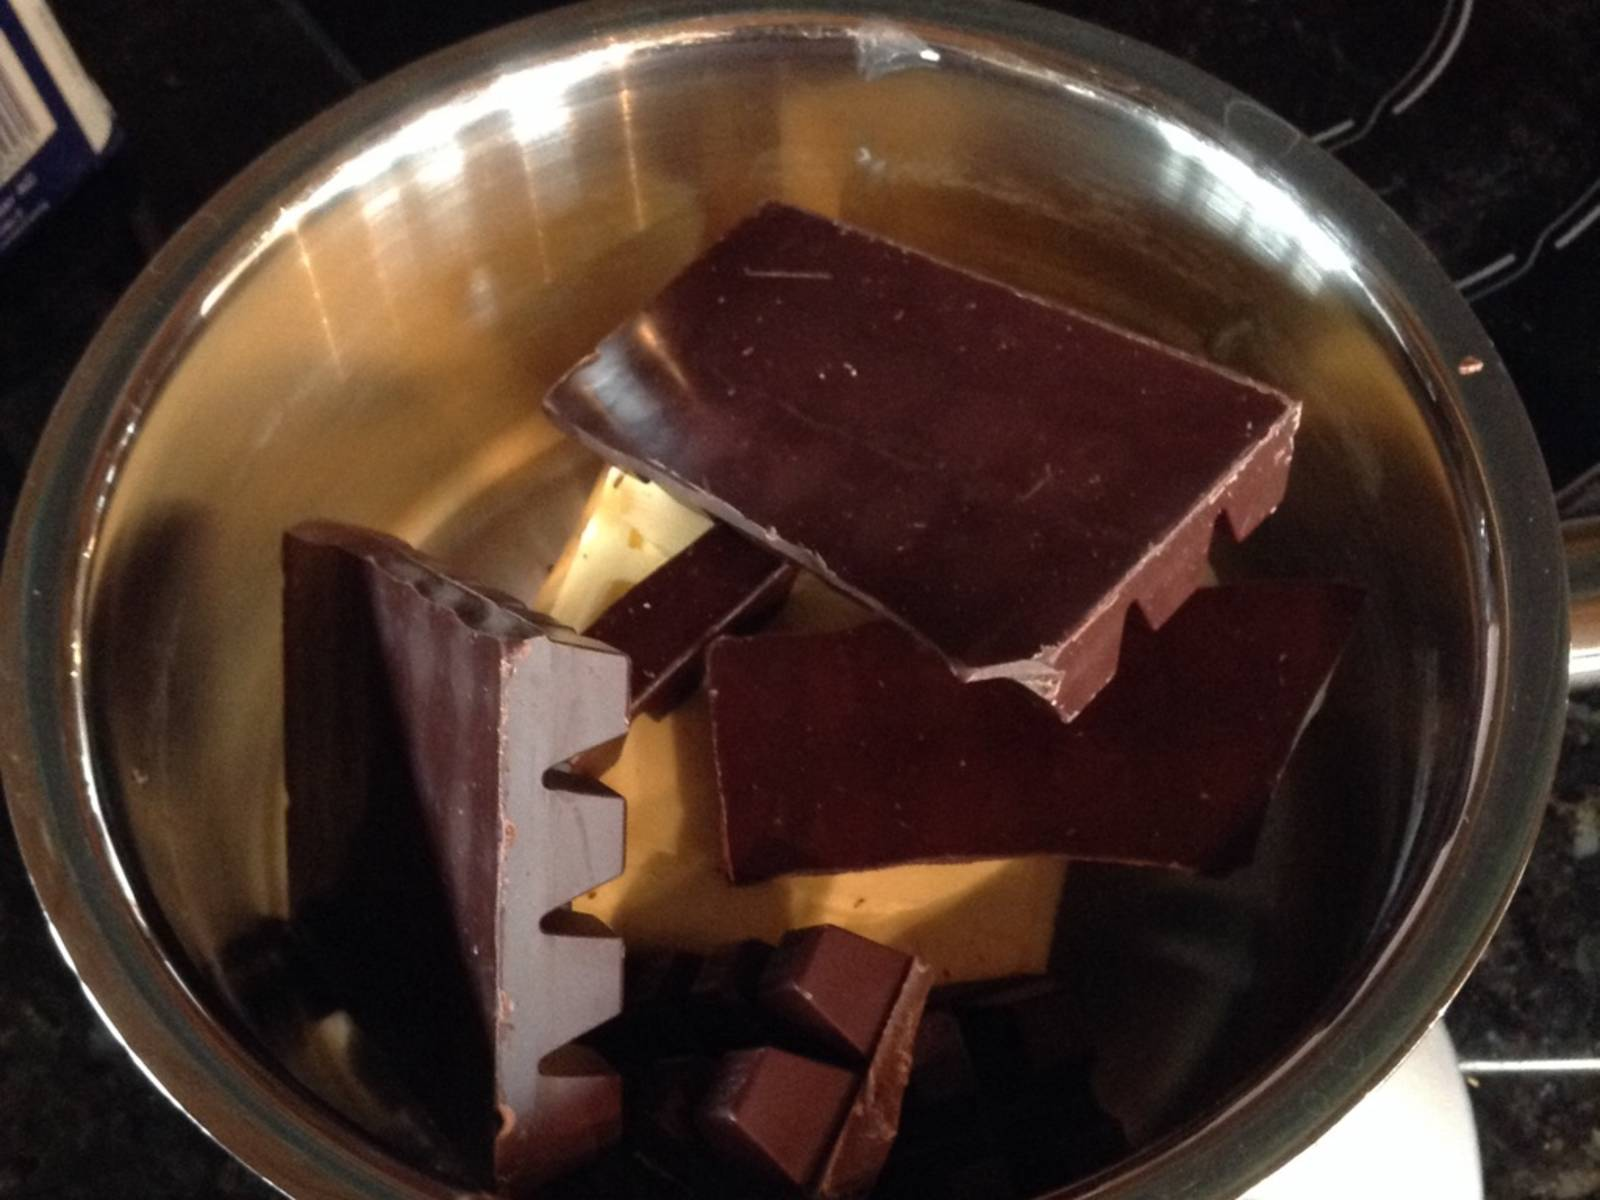 Pre-heat the oven to 175°C/350°F (convection). Melt chocolate and butter in a pan set over low heat. Stir occasionally to avoid burning. As the cake will be very sweet due to the large amount of sugar, I suggest you use very dark chocolate (with a high cocoa content).